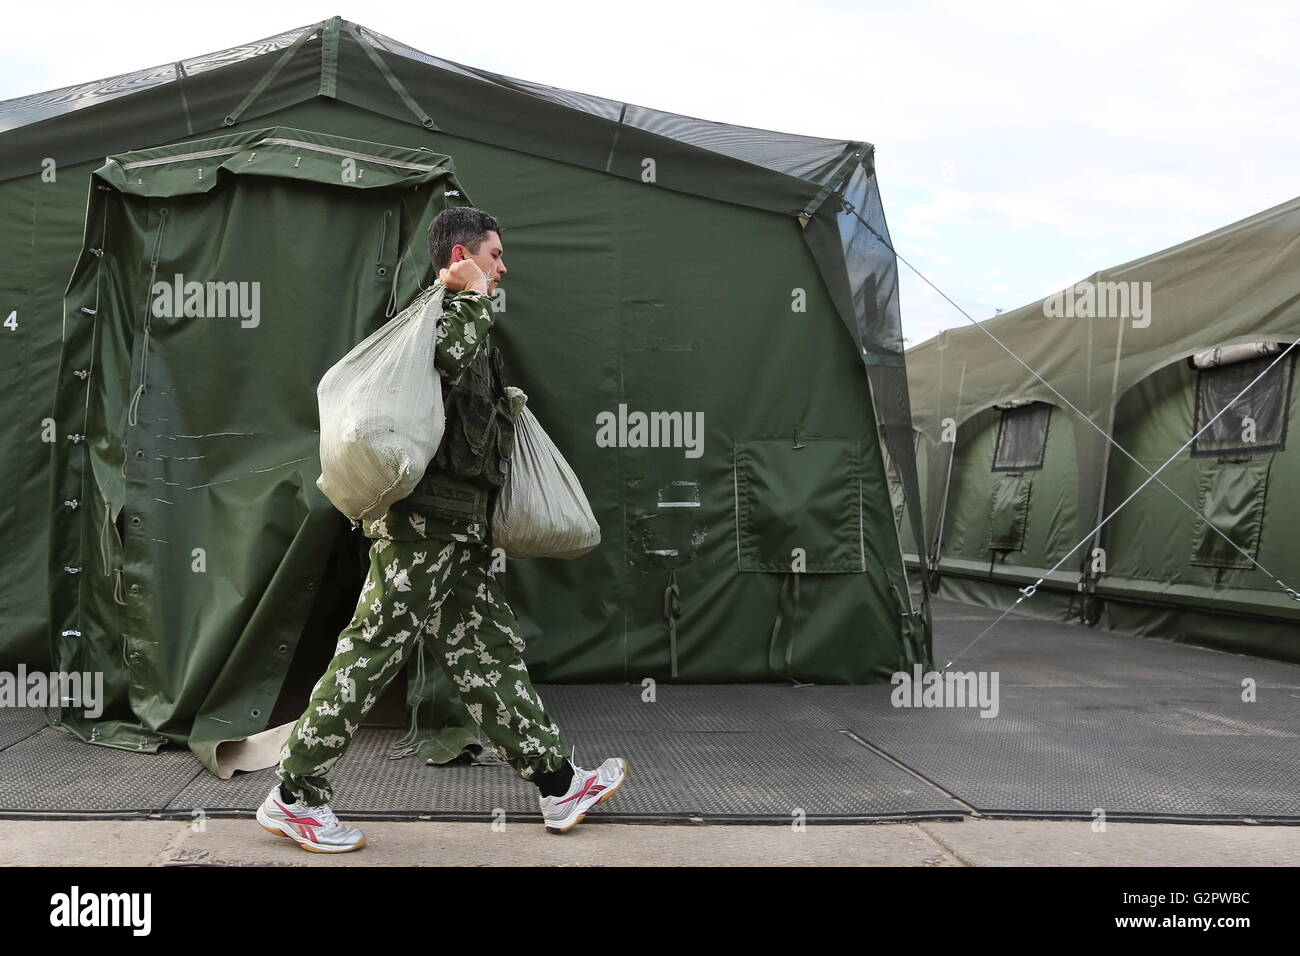 RYAZAN REGION RUSSIA - JUNE 2 2016 A participant in a tent c& during Operation Storm a project by the Russian Army Mayak Radio TV24 broadcaster and ... & RYAZAN REGION RUSSIA - JUNE 2 2016: A participant in a tent camp ...